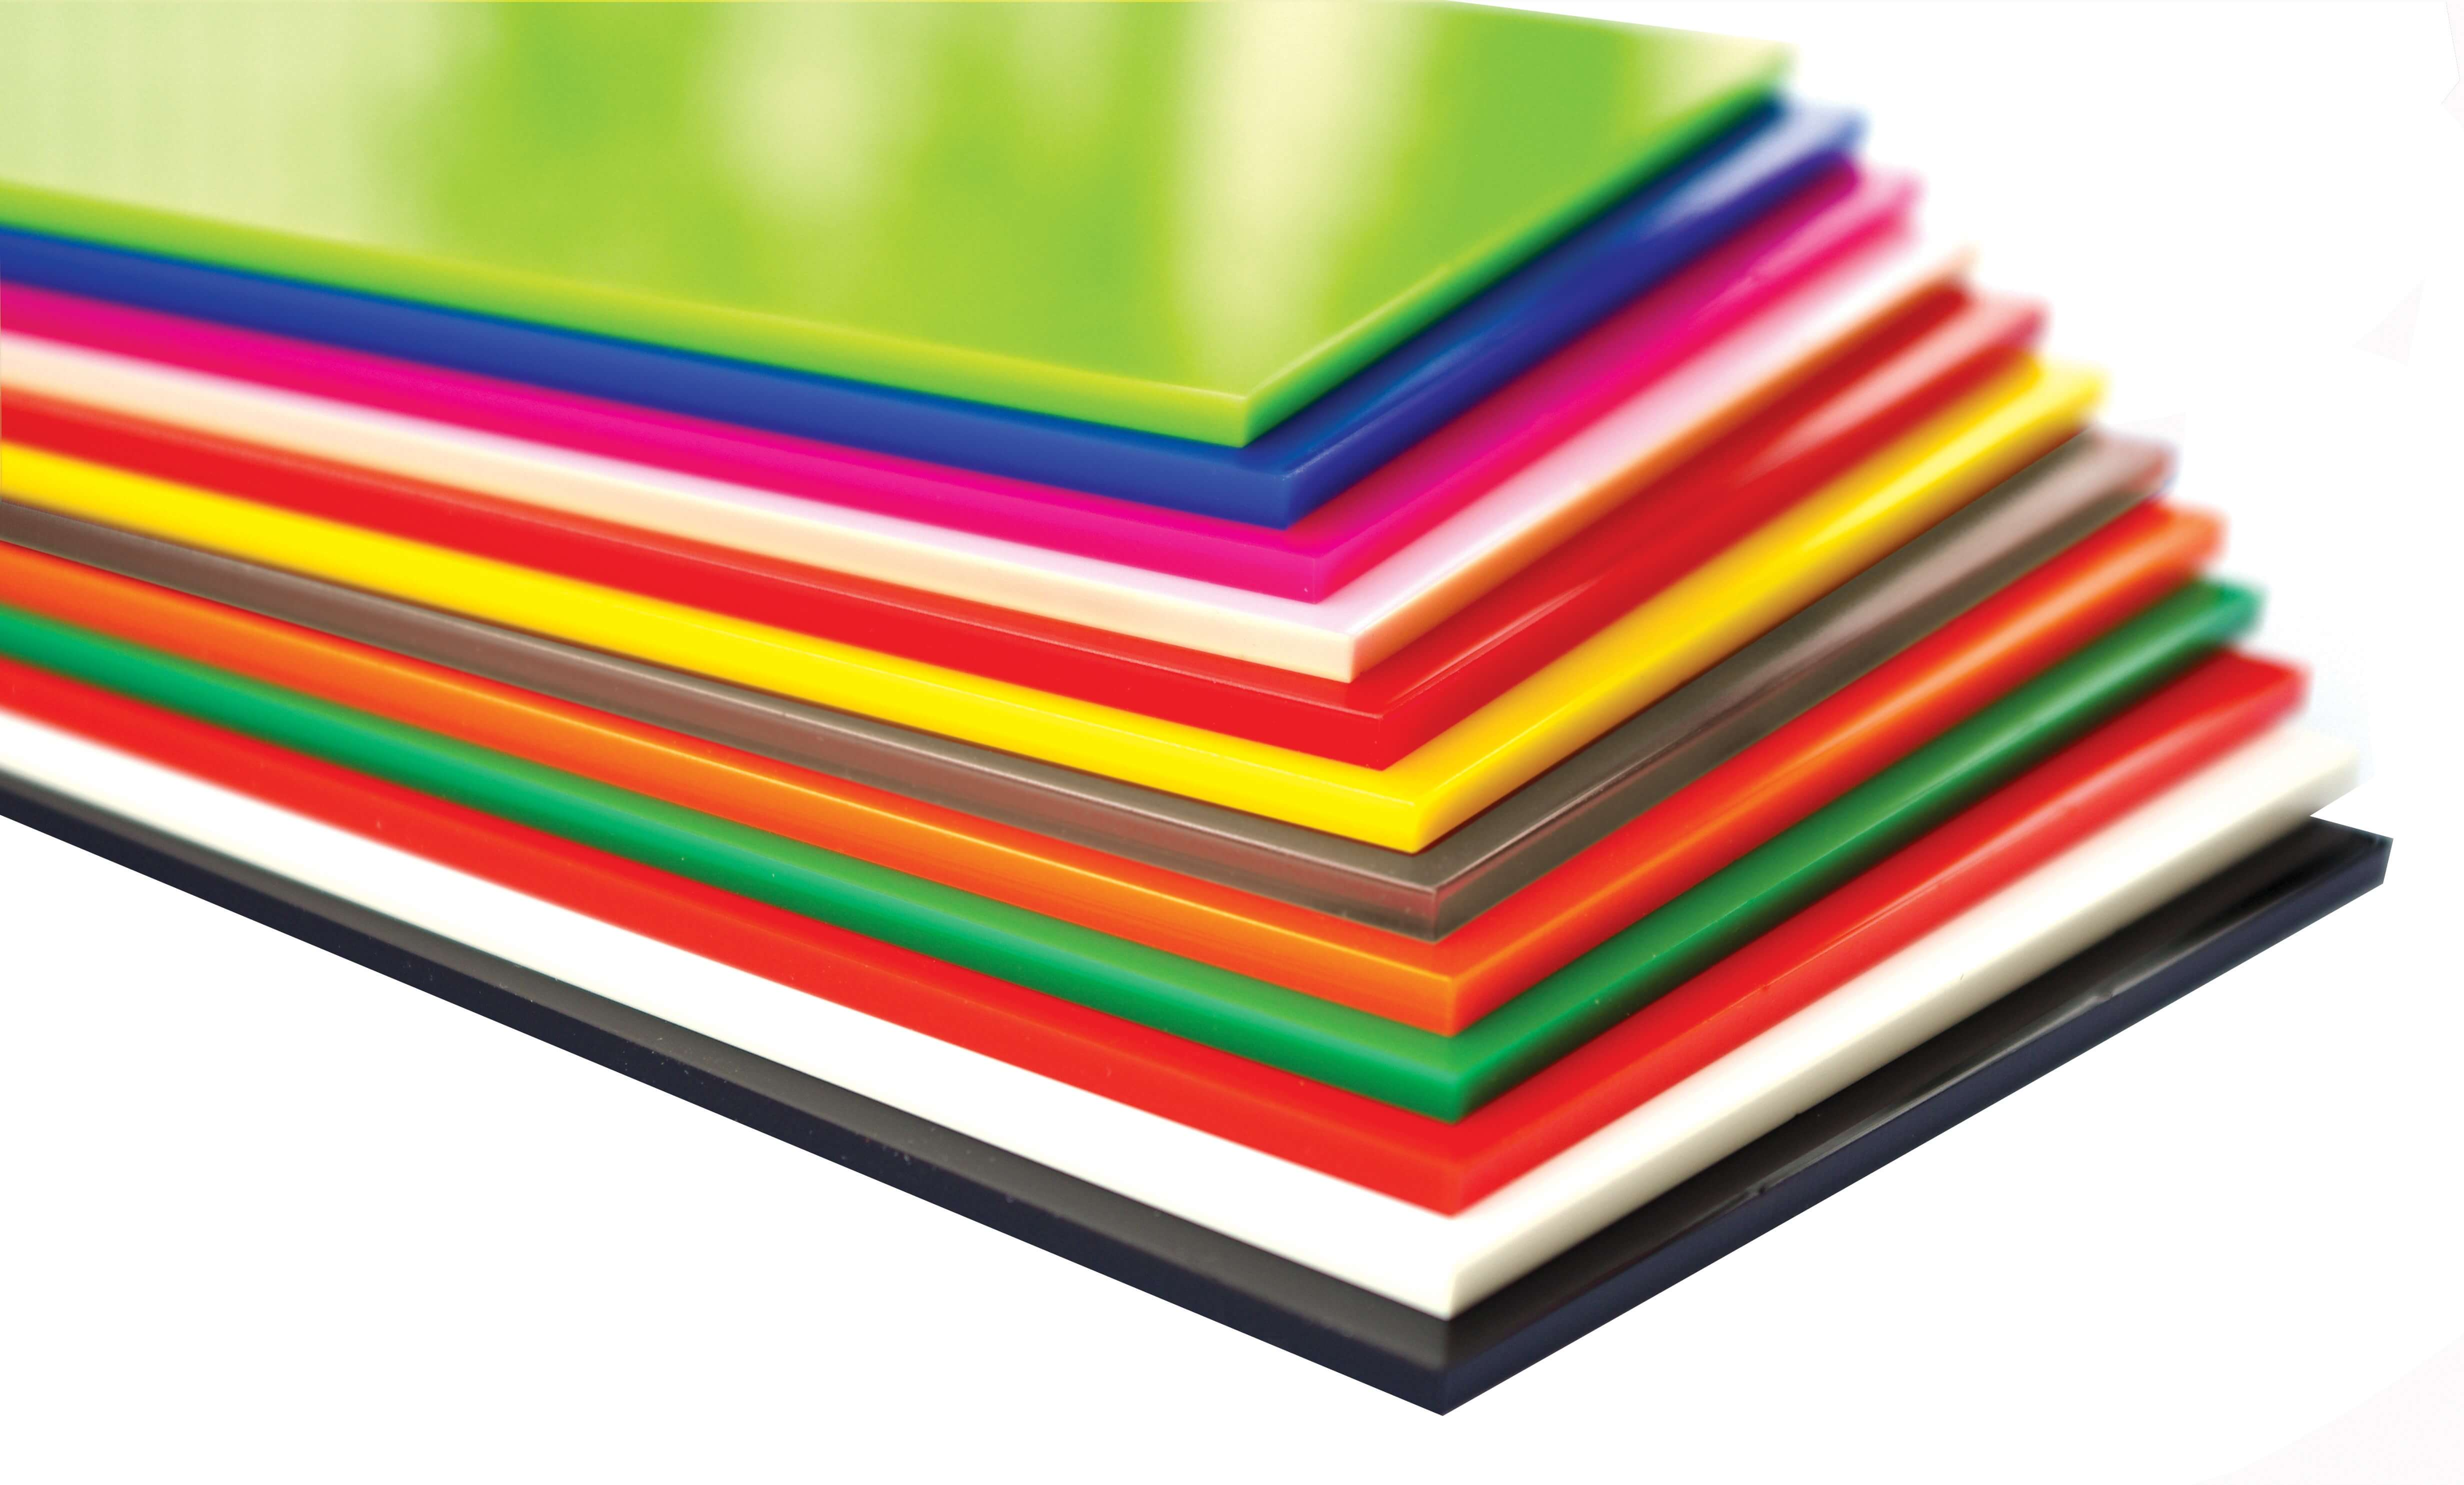 Cast Acrylic 3mm Sheet - 600 x 400mm Assorted Pack of 12